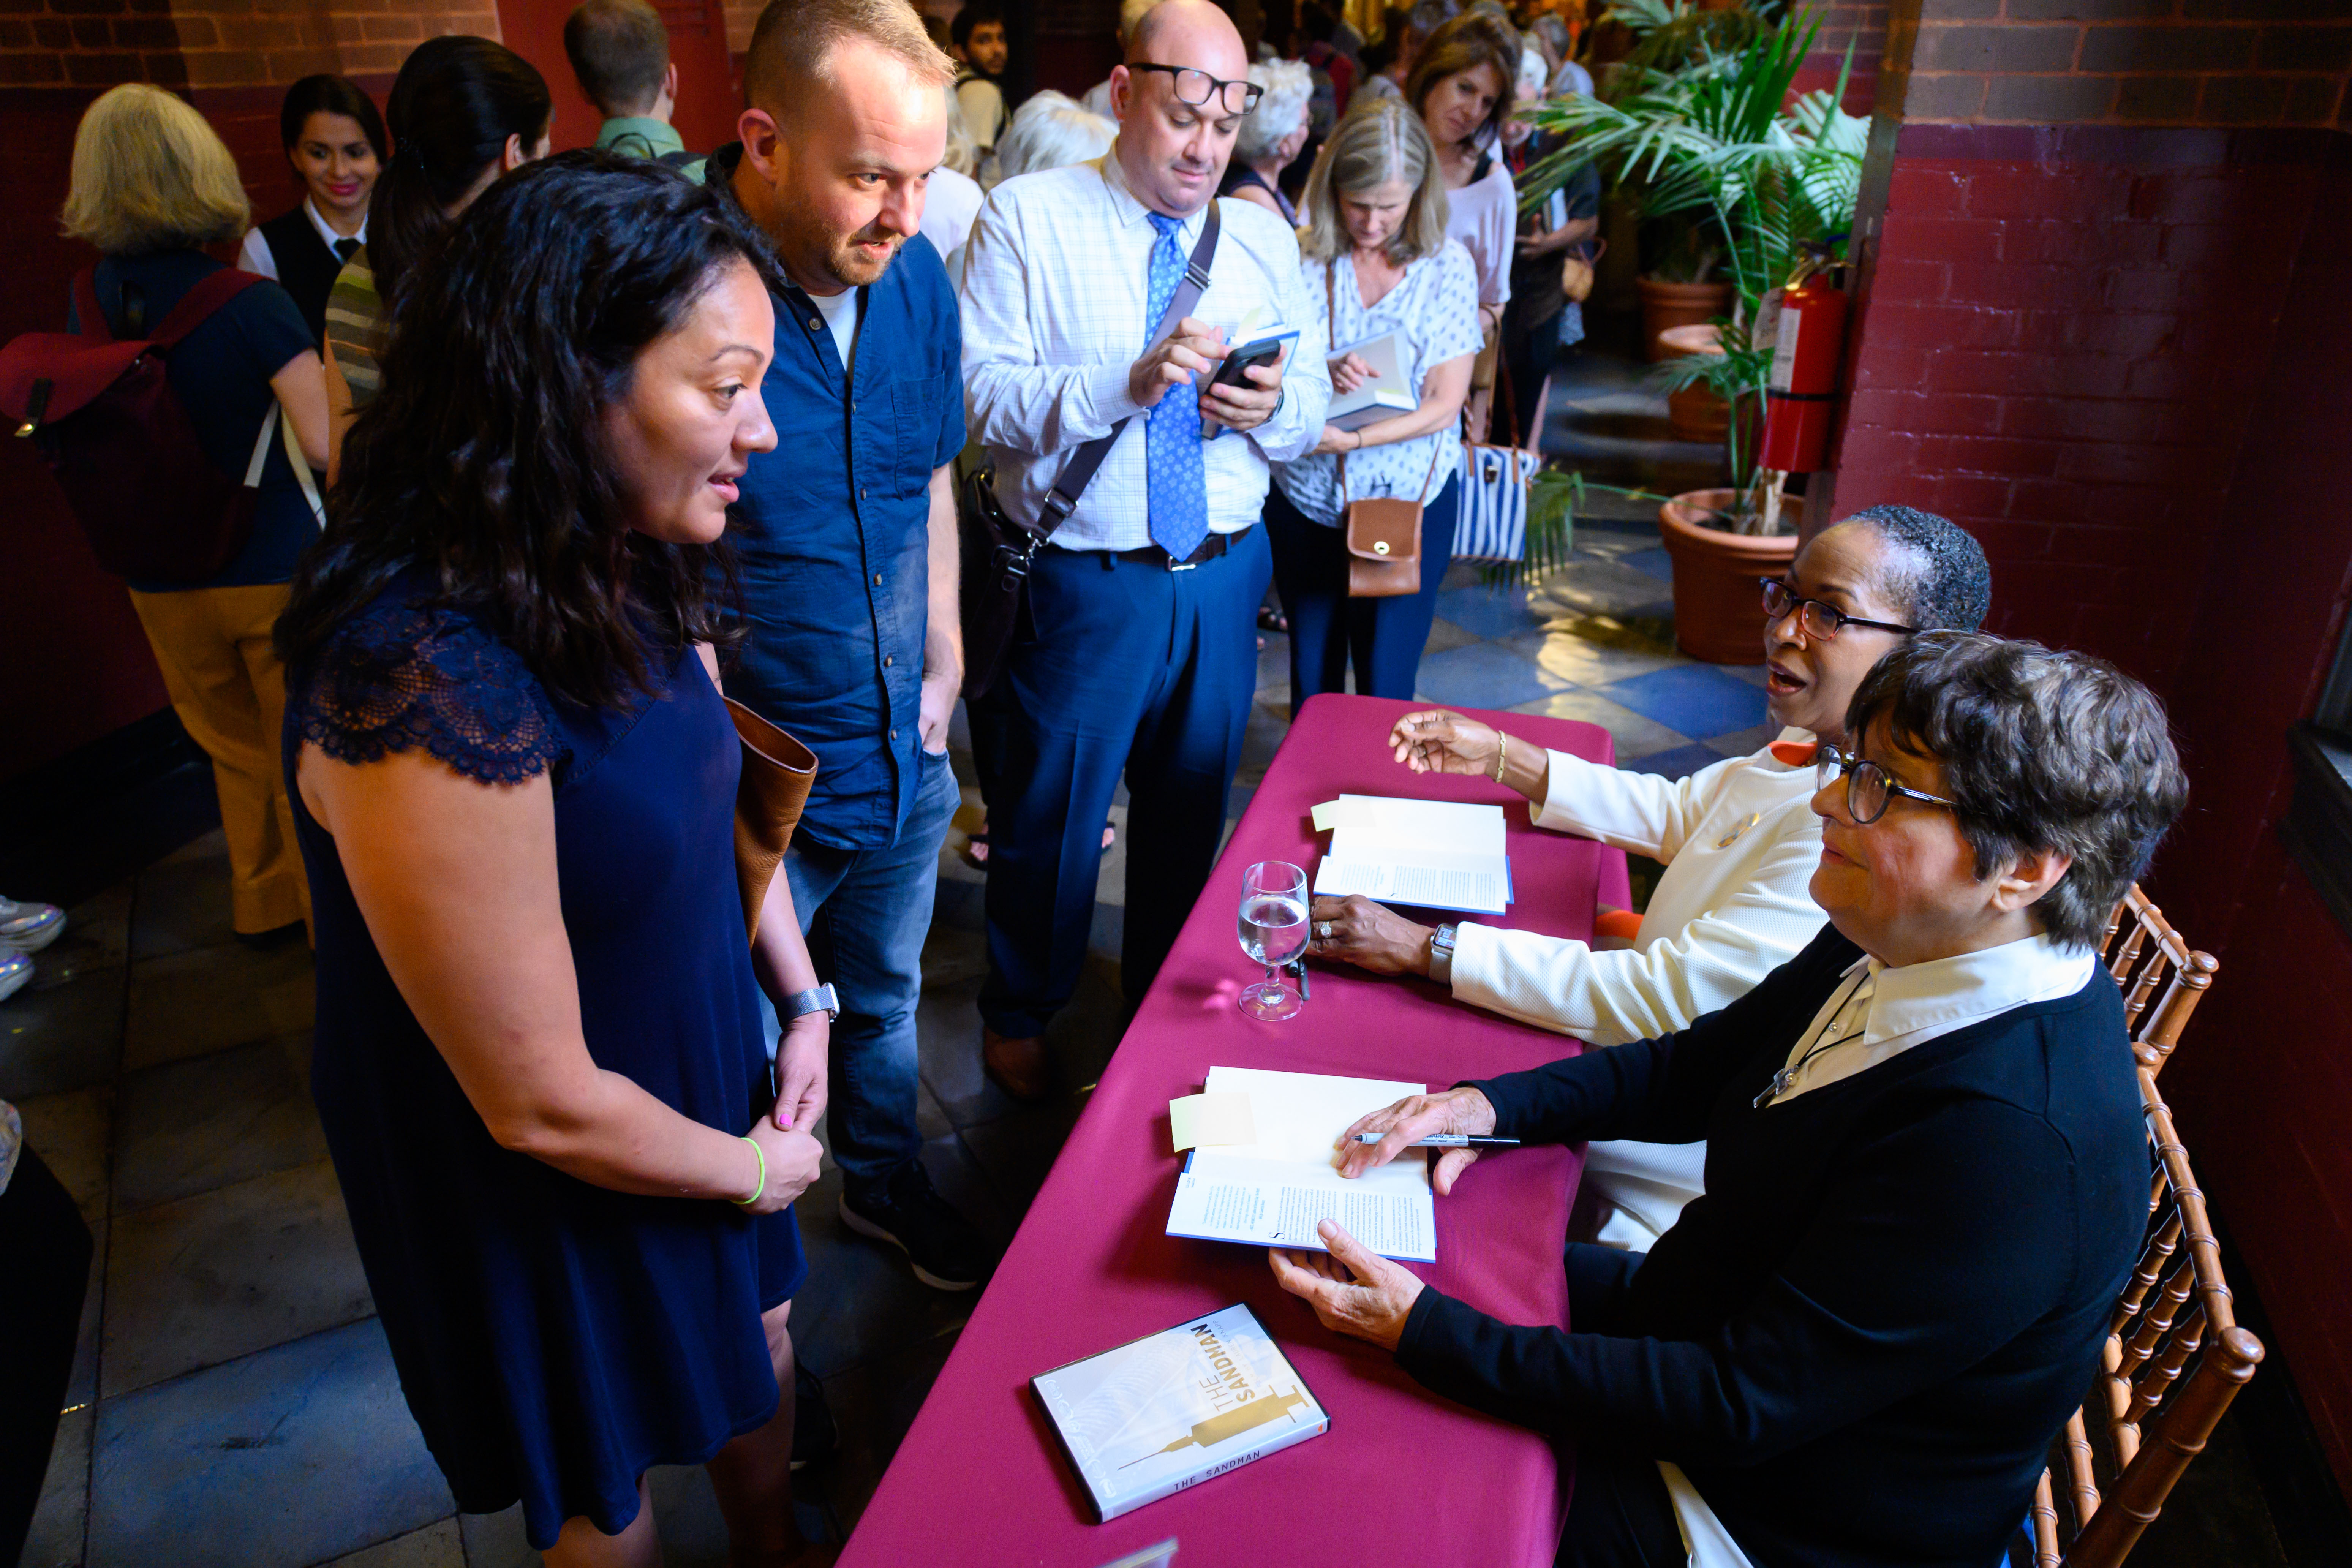 Sister Prejean and Cheryllyn Branche sign books after the event.